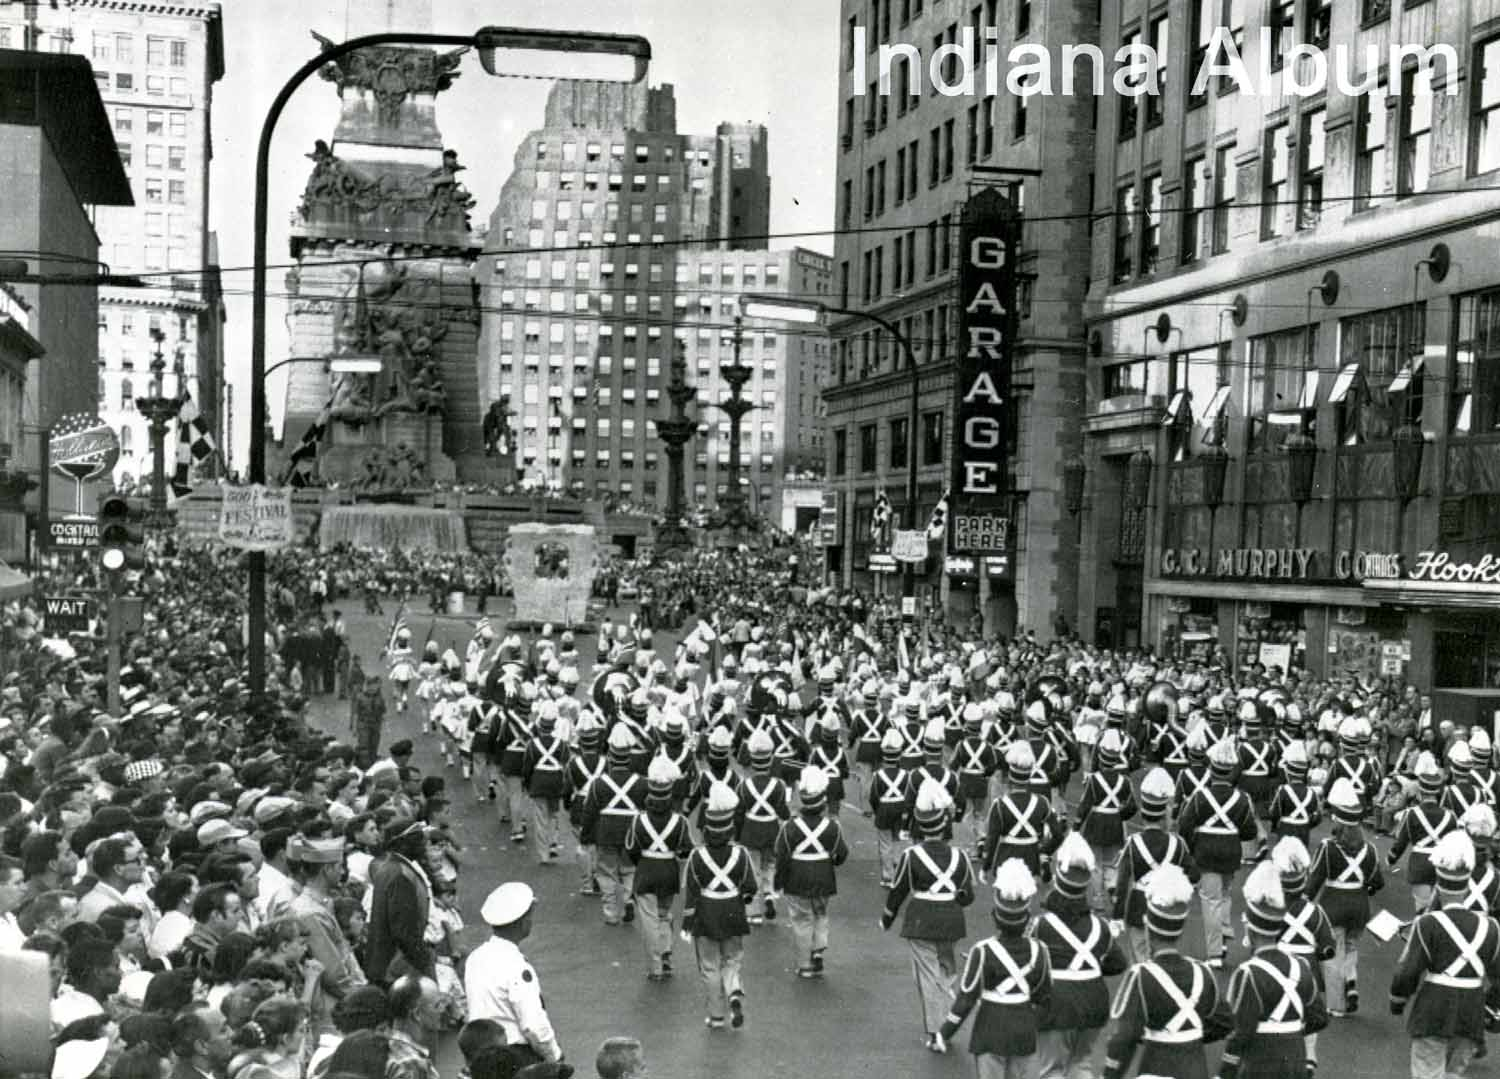 Indianapolis Then and Now:  West Market Street and the 500 Festival Parade